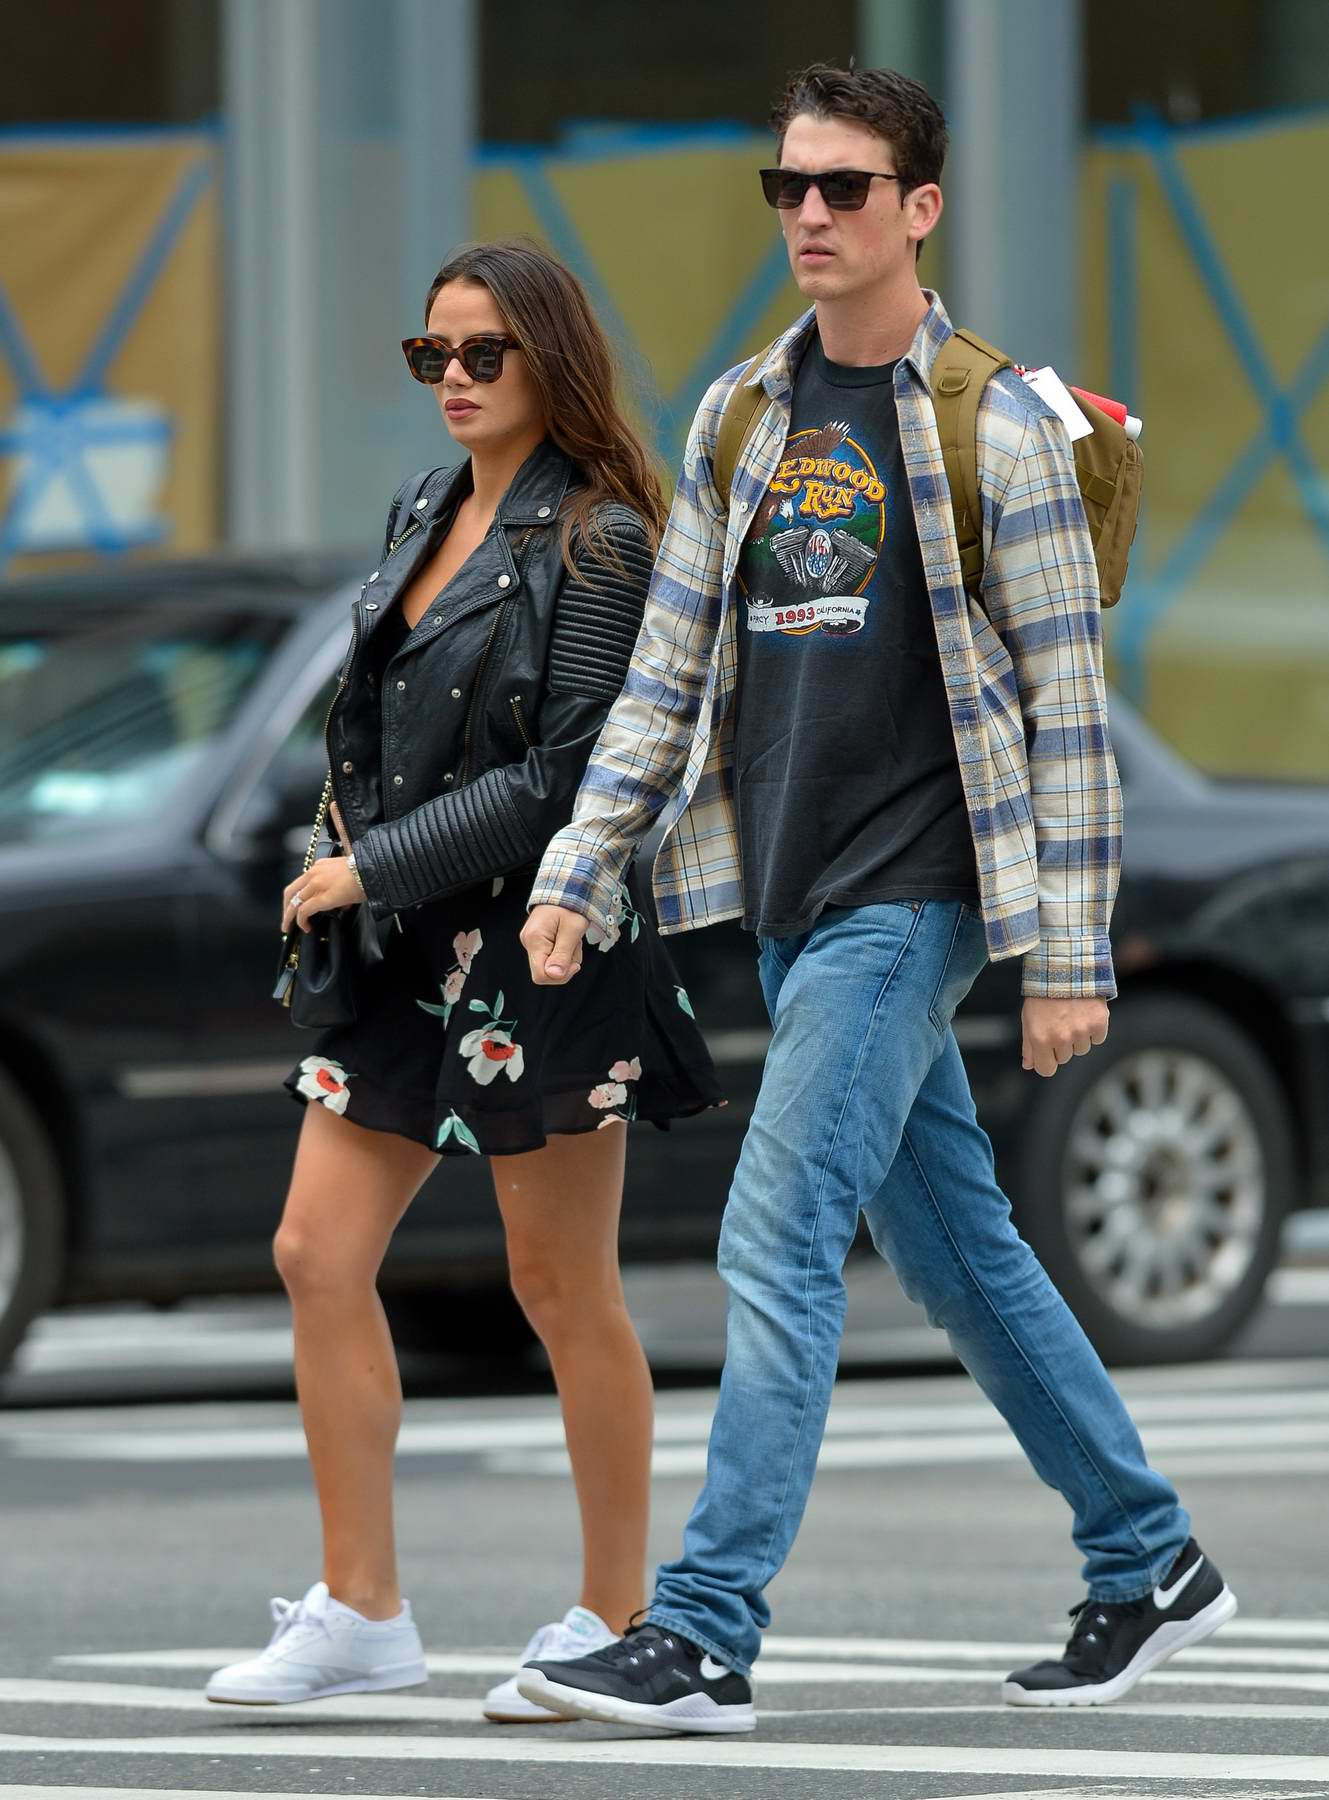 Keleigh Sperry and Miles Teller out for a walk in the East Village, New York City